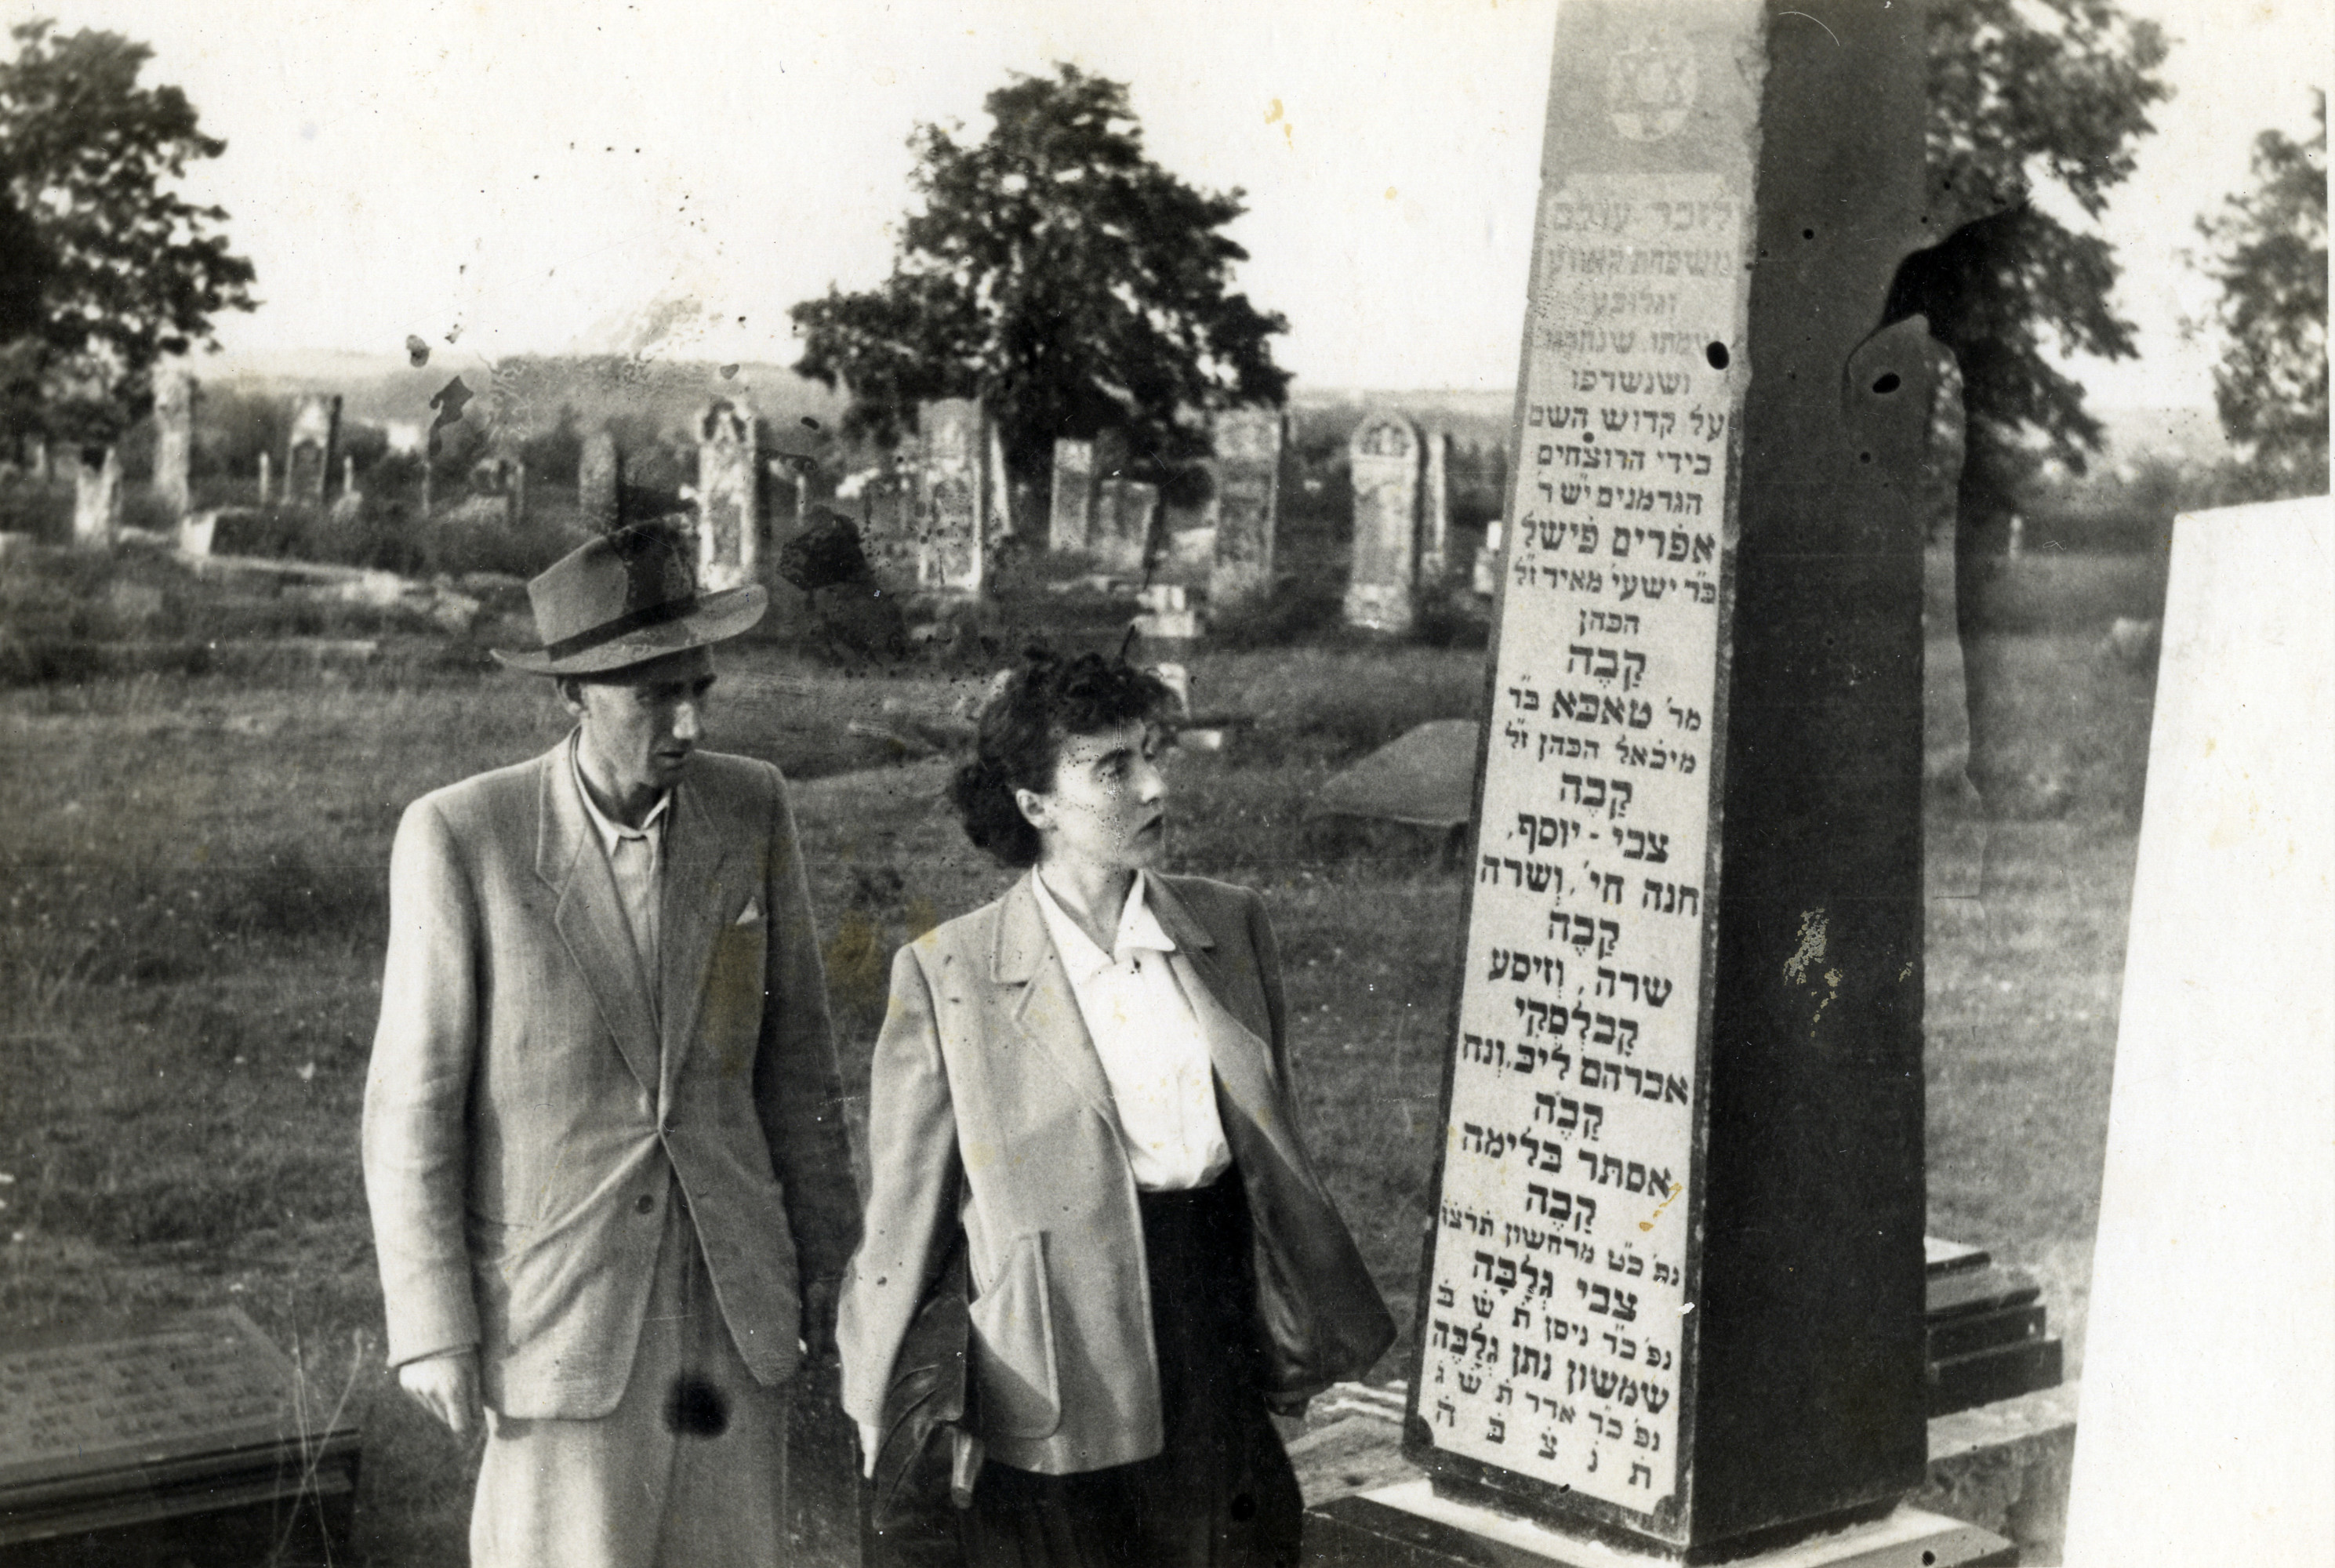 Survivors from Kalisz view a monument to individuals who were killed in the Holocaust.  Pictured are Ester (nee Gluba) and Jeszaayahu Kawe, prior to their immigration to Israel.  The monument was created by Jeszaayahu.